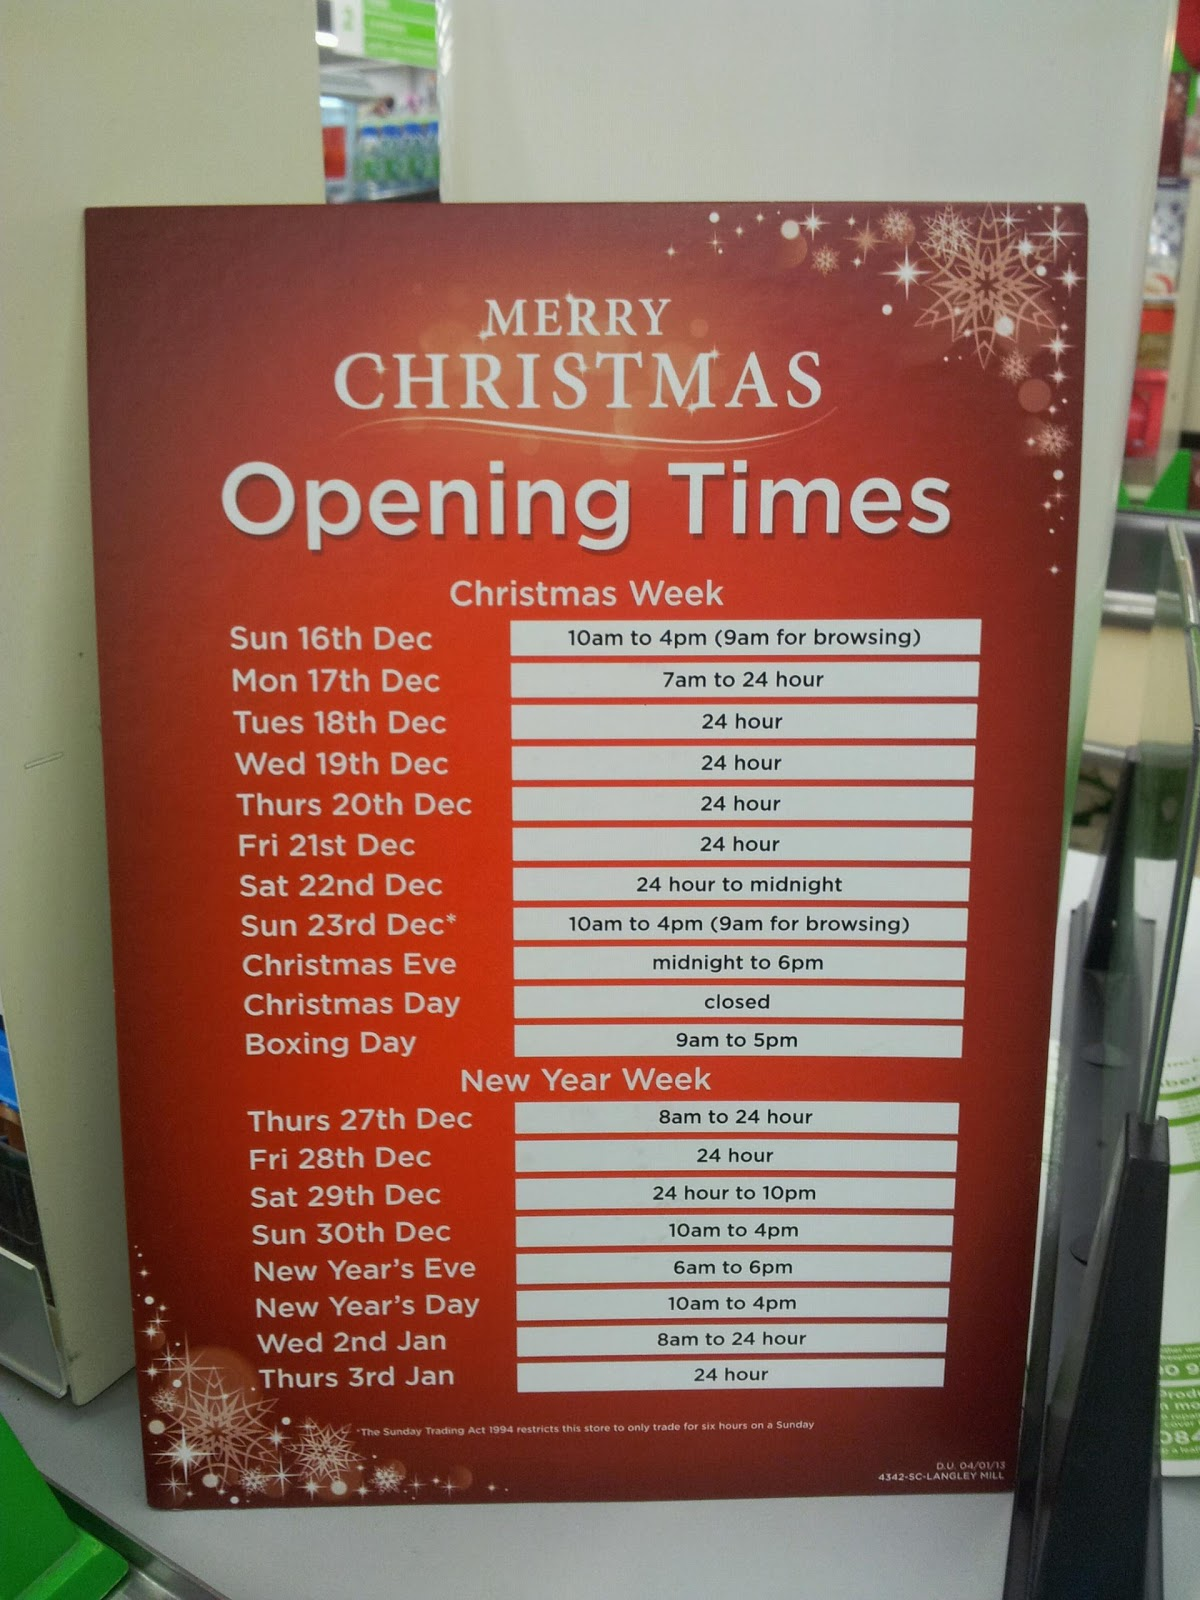 christmas opening times for langley mill asda and post office - Post Office Open On Christmas Eve